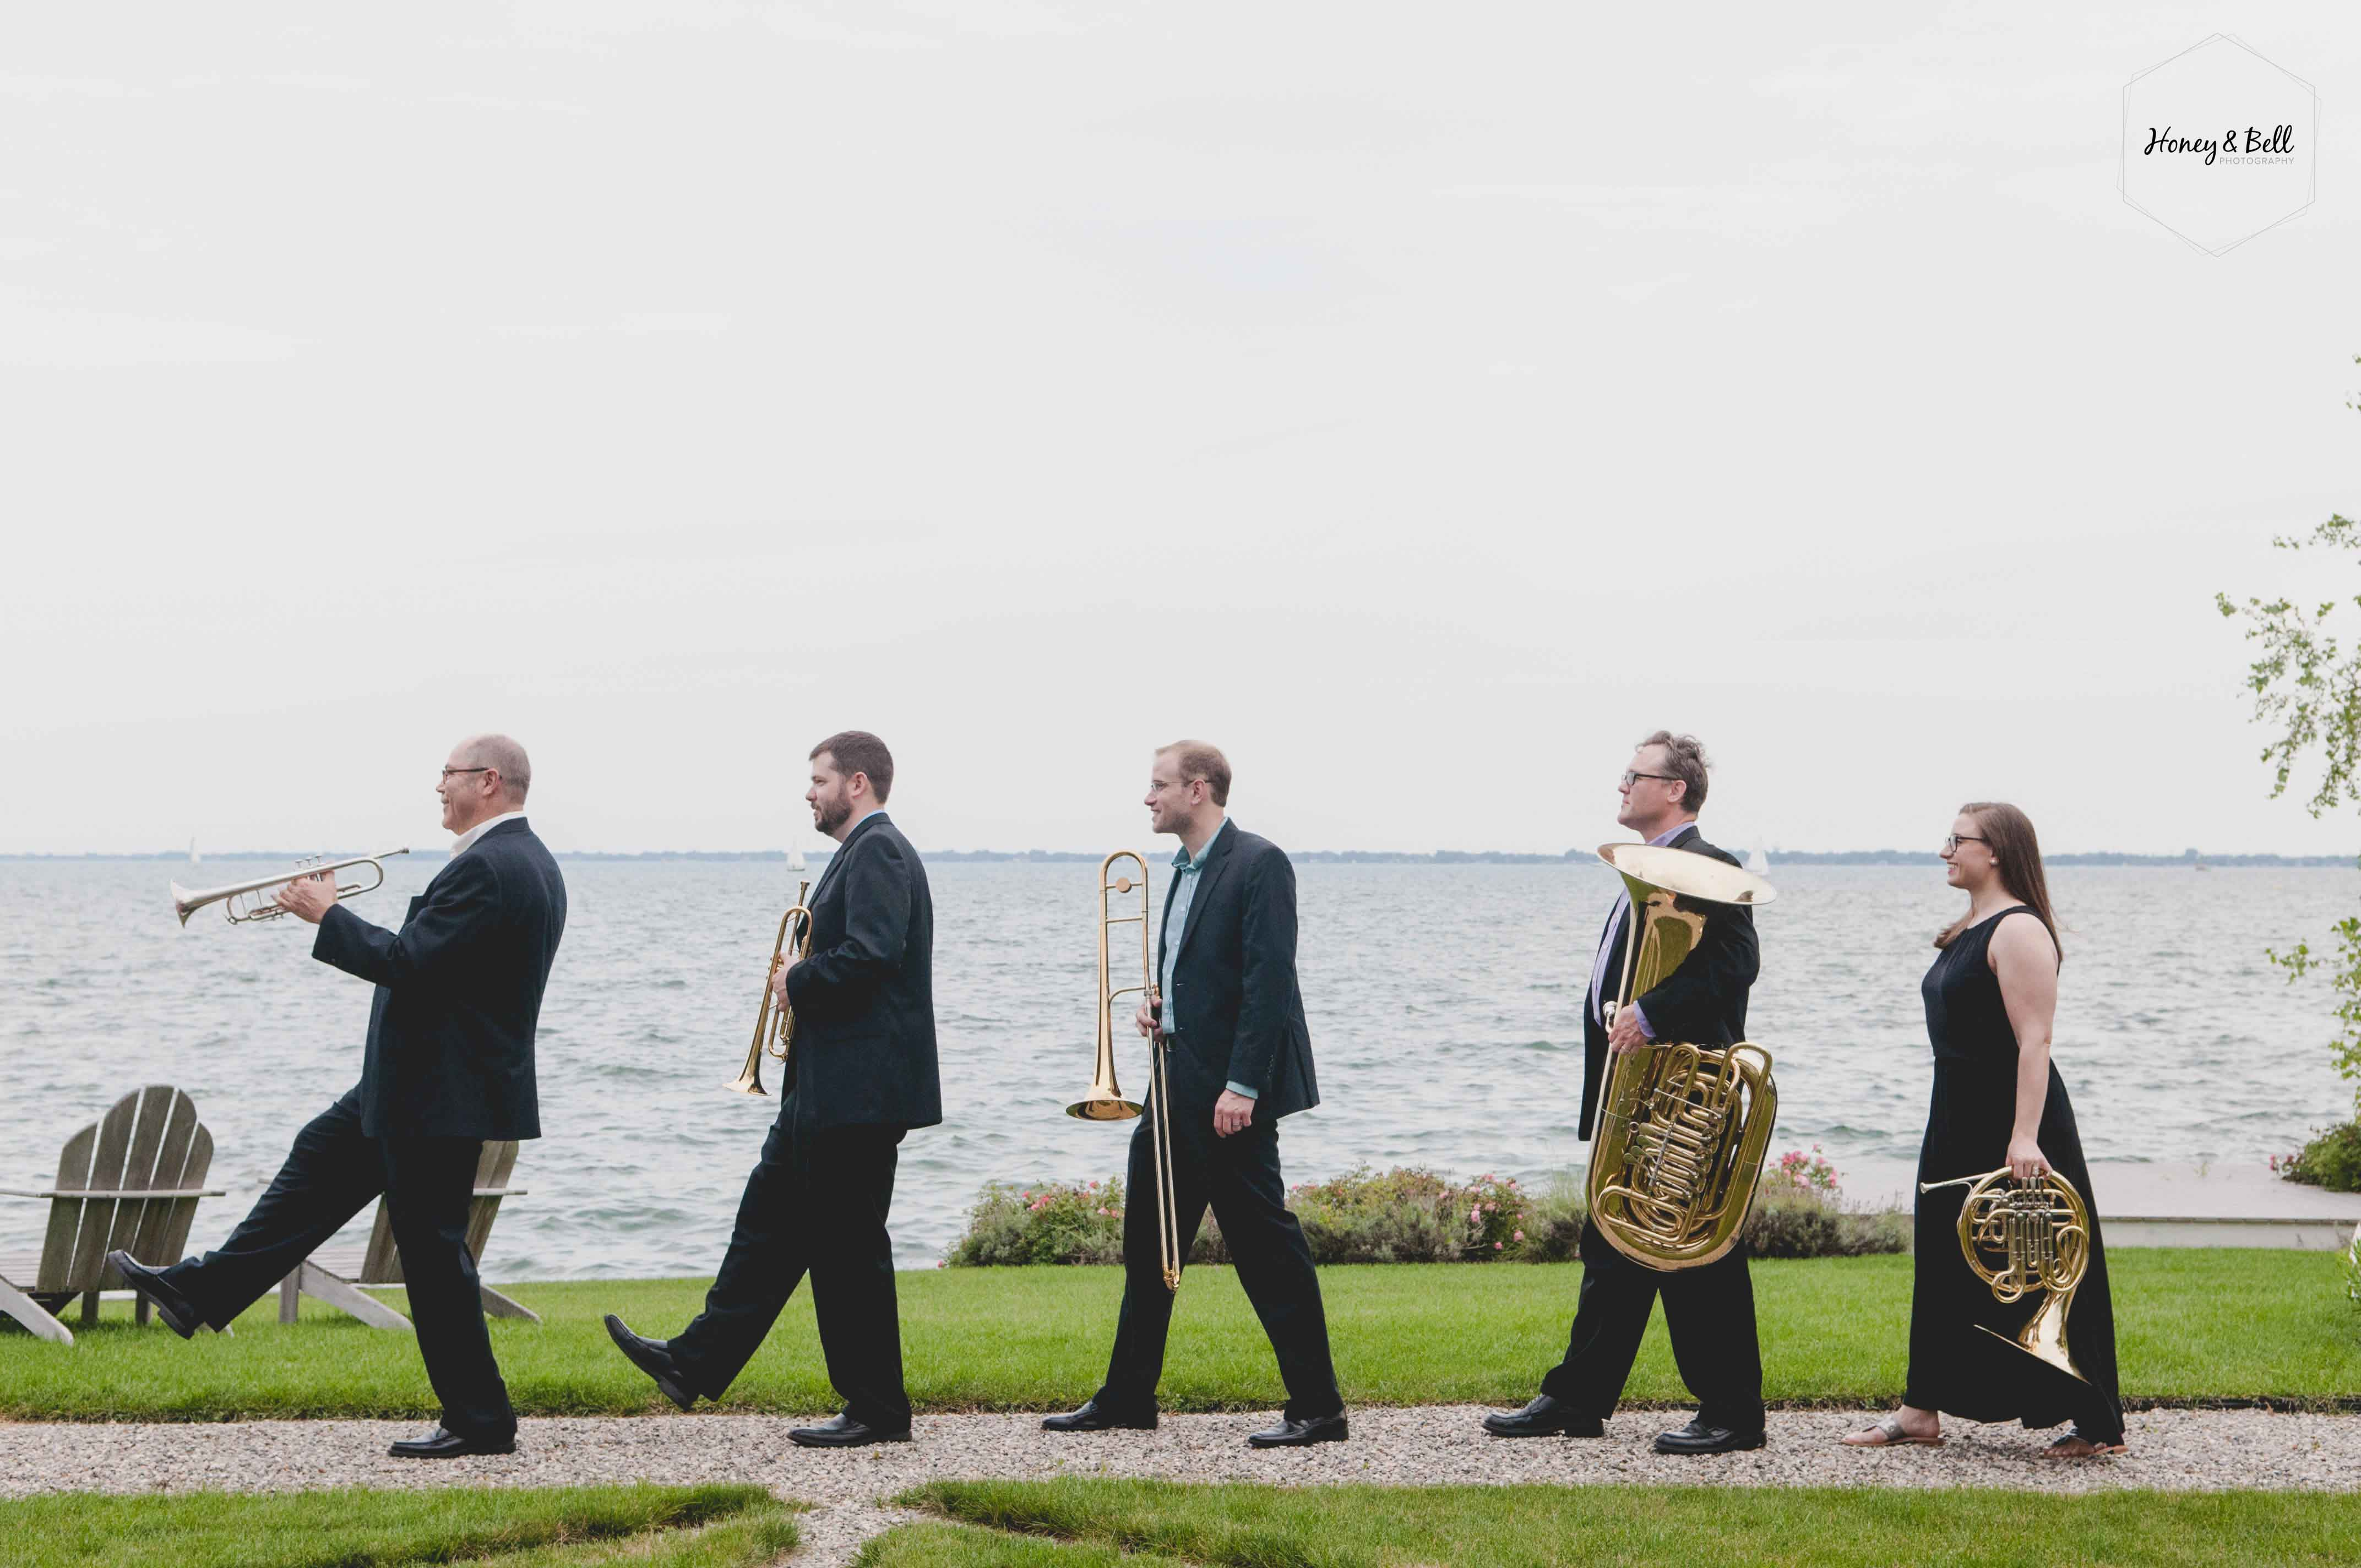 north-of-canada-brass-quintet-detroit-michigan-grosse-pointe-band-photographer-12